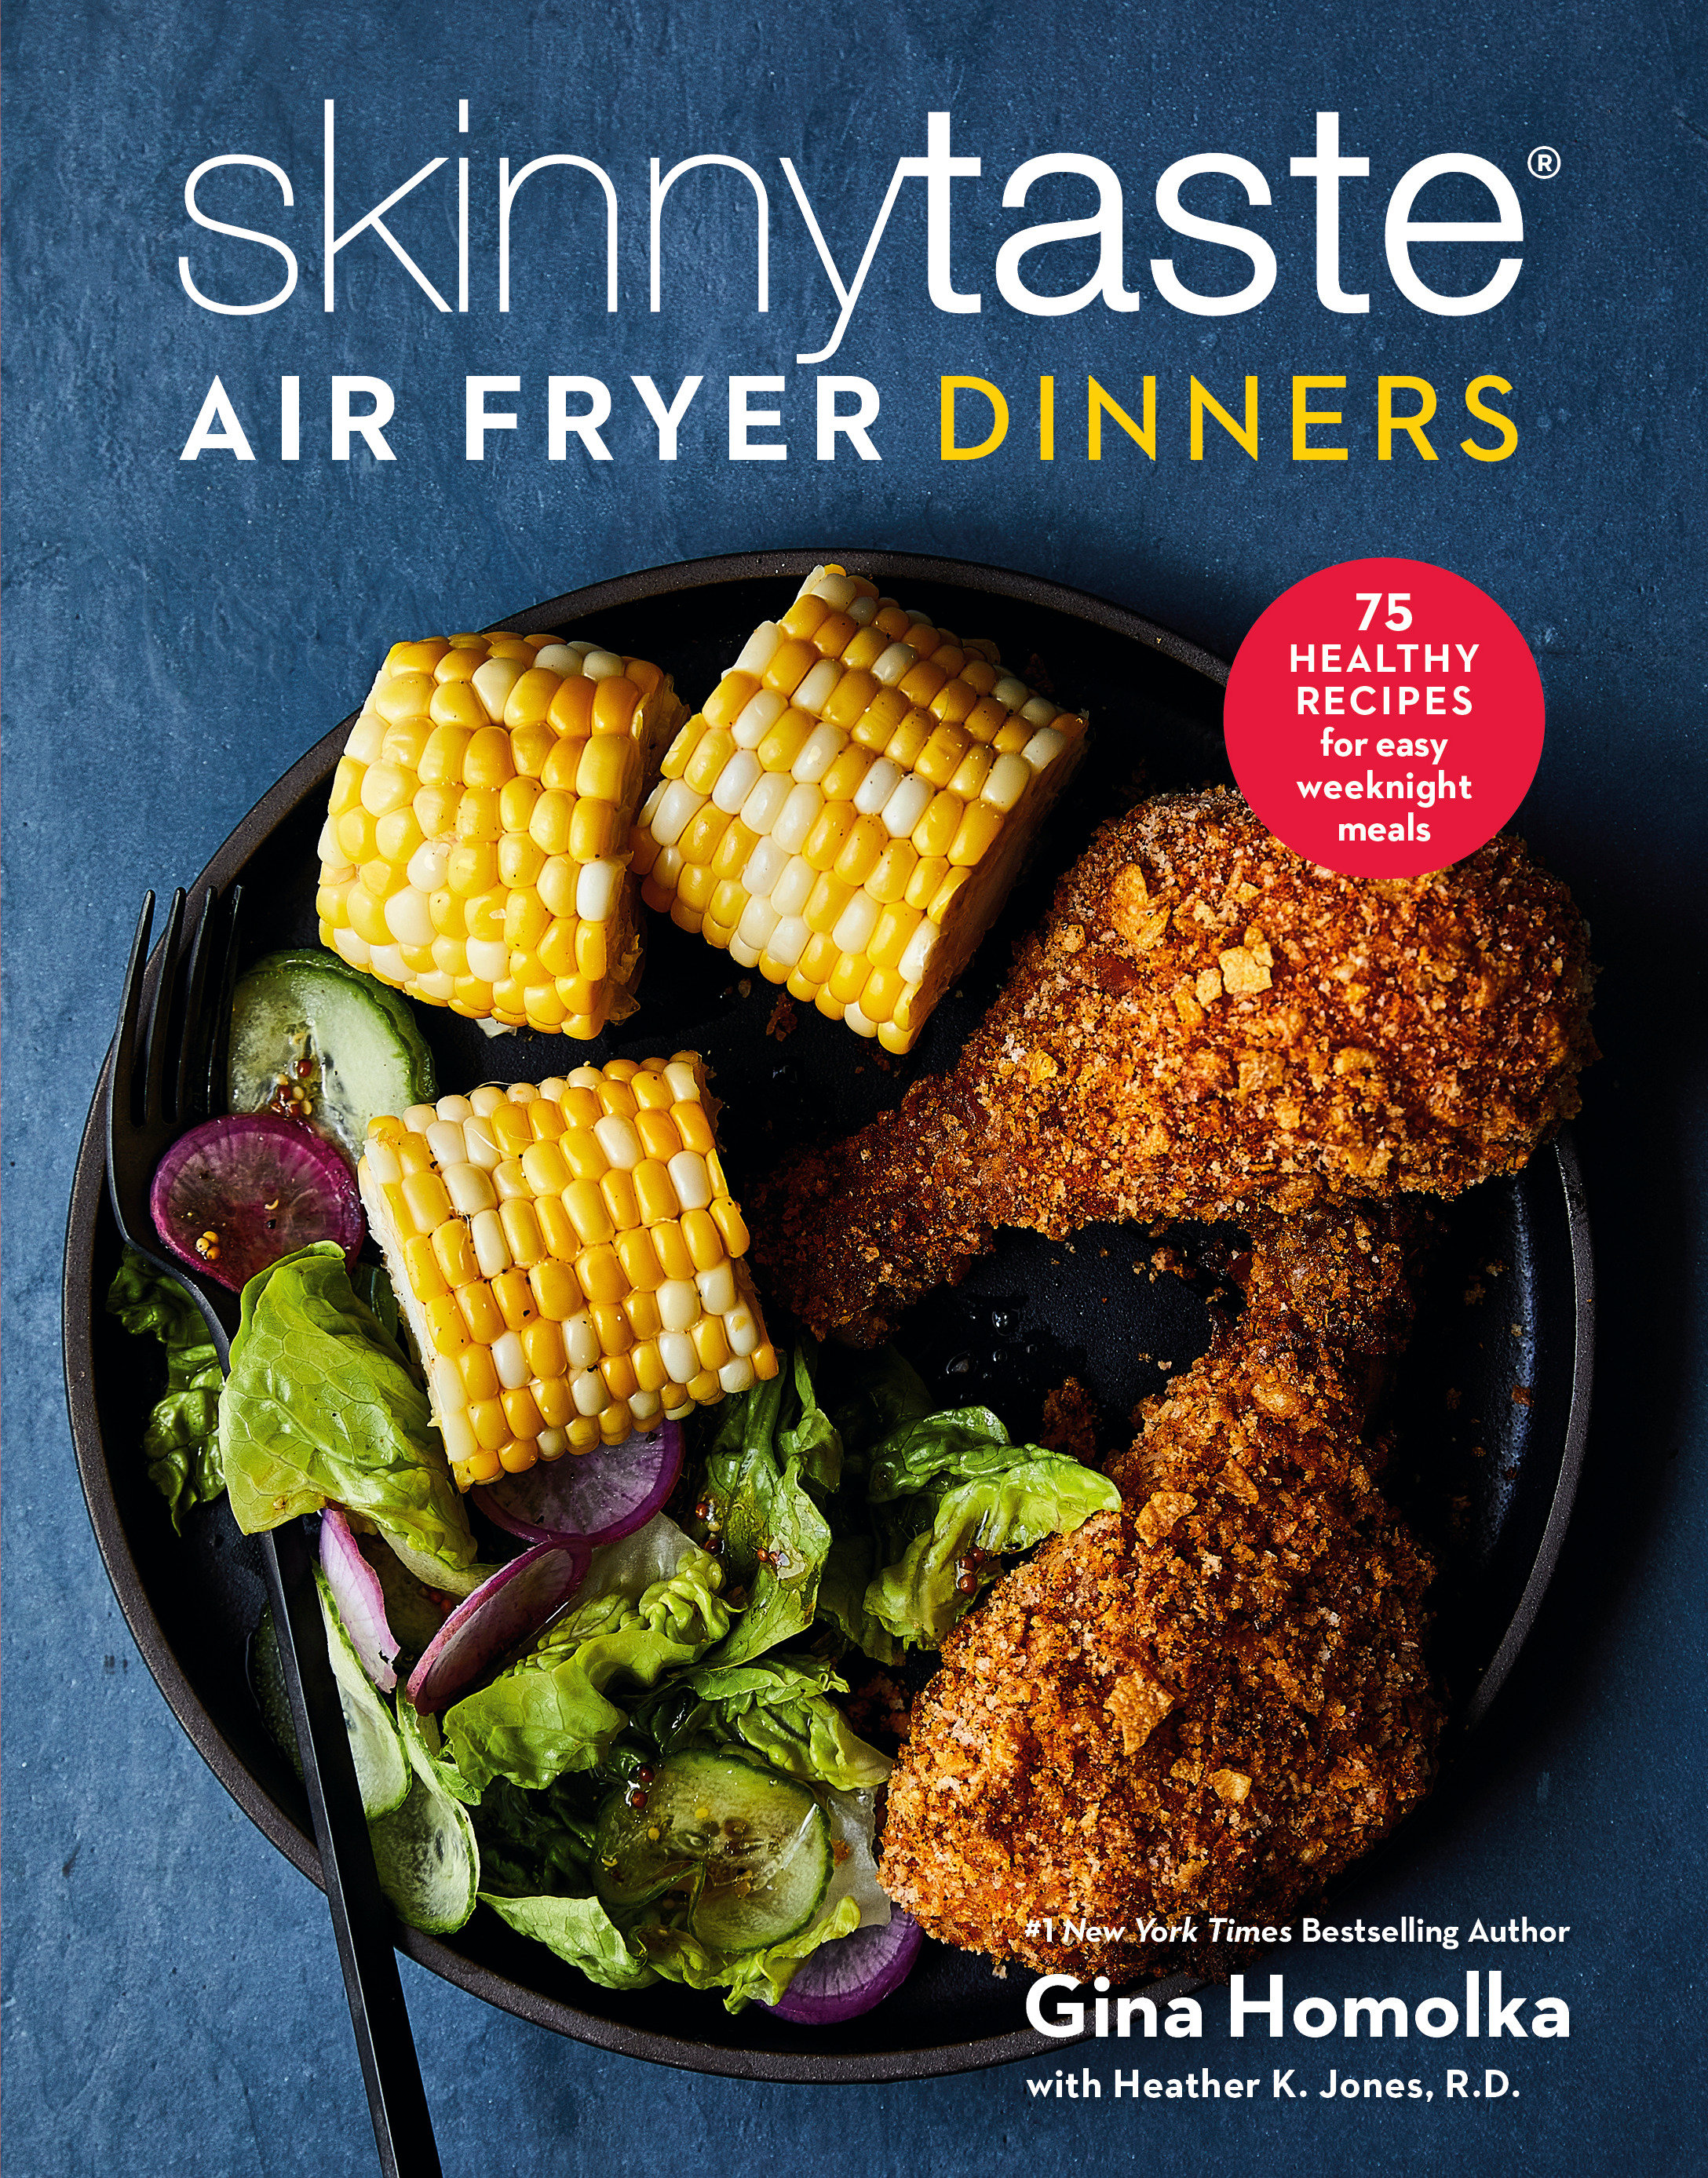 Skinnytaste Air Fryer Dinners 75 Healthy Recipes for Easy Weeknight Meals cover image